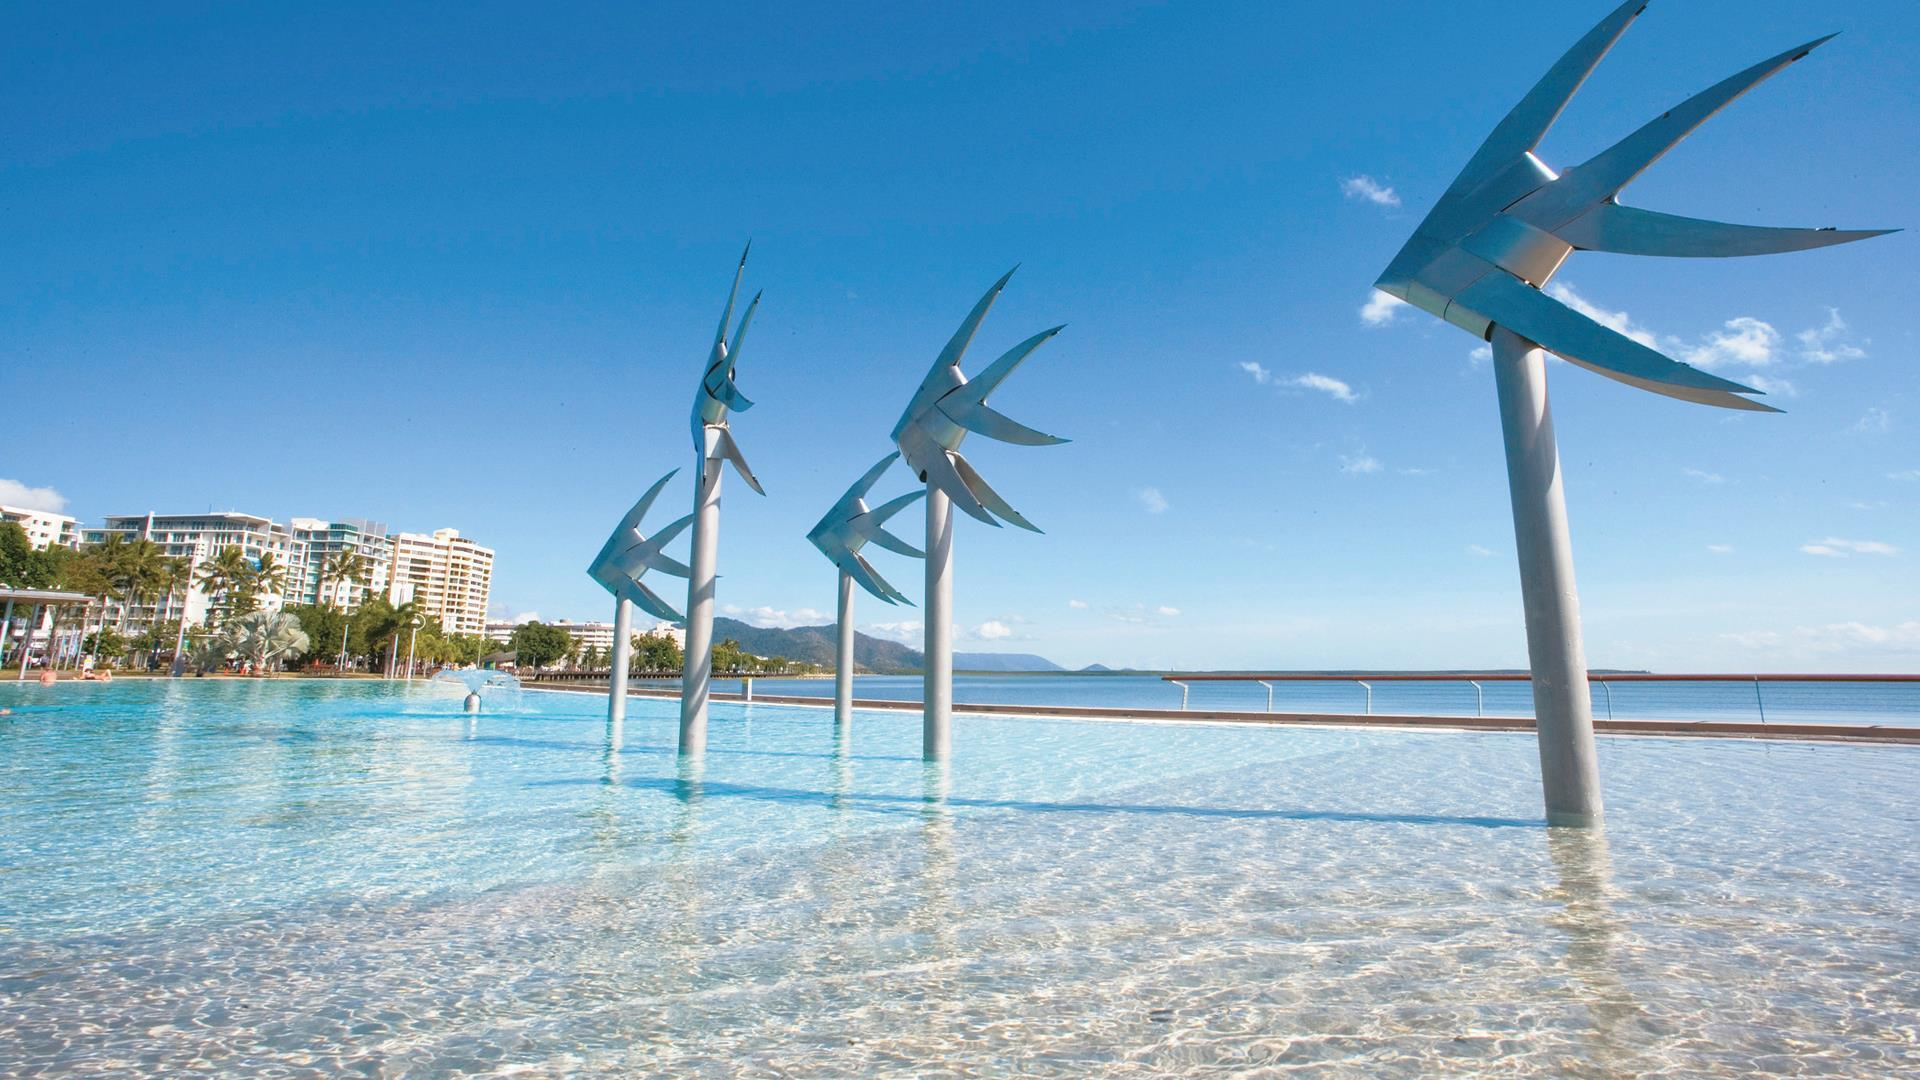 Cruise holidays in Cairns, Australia